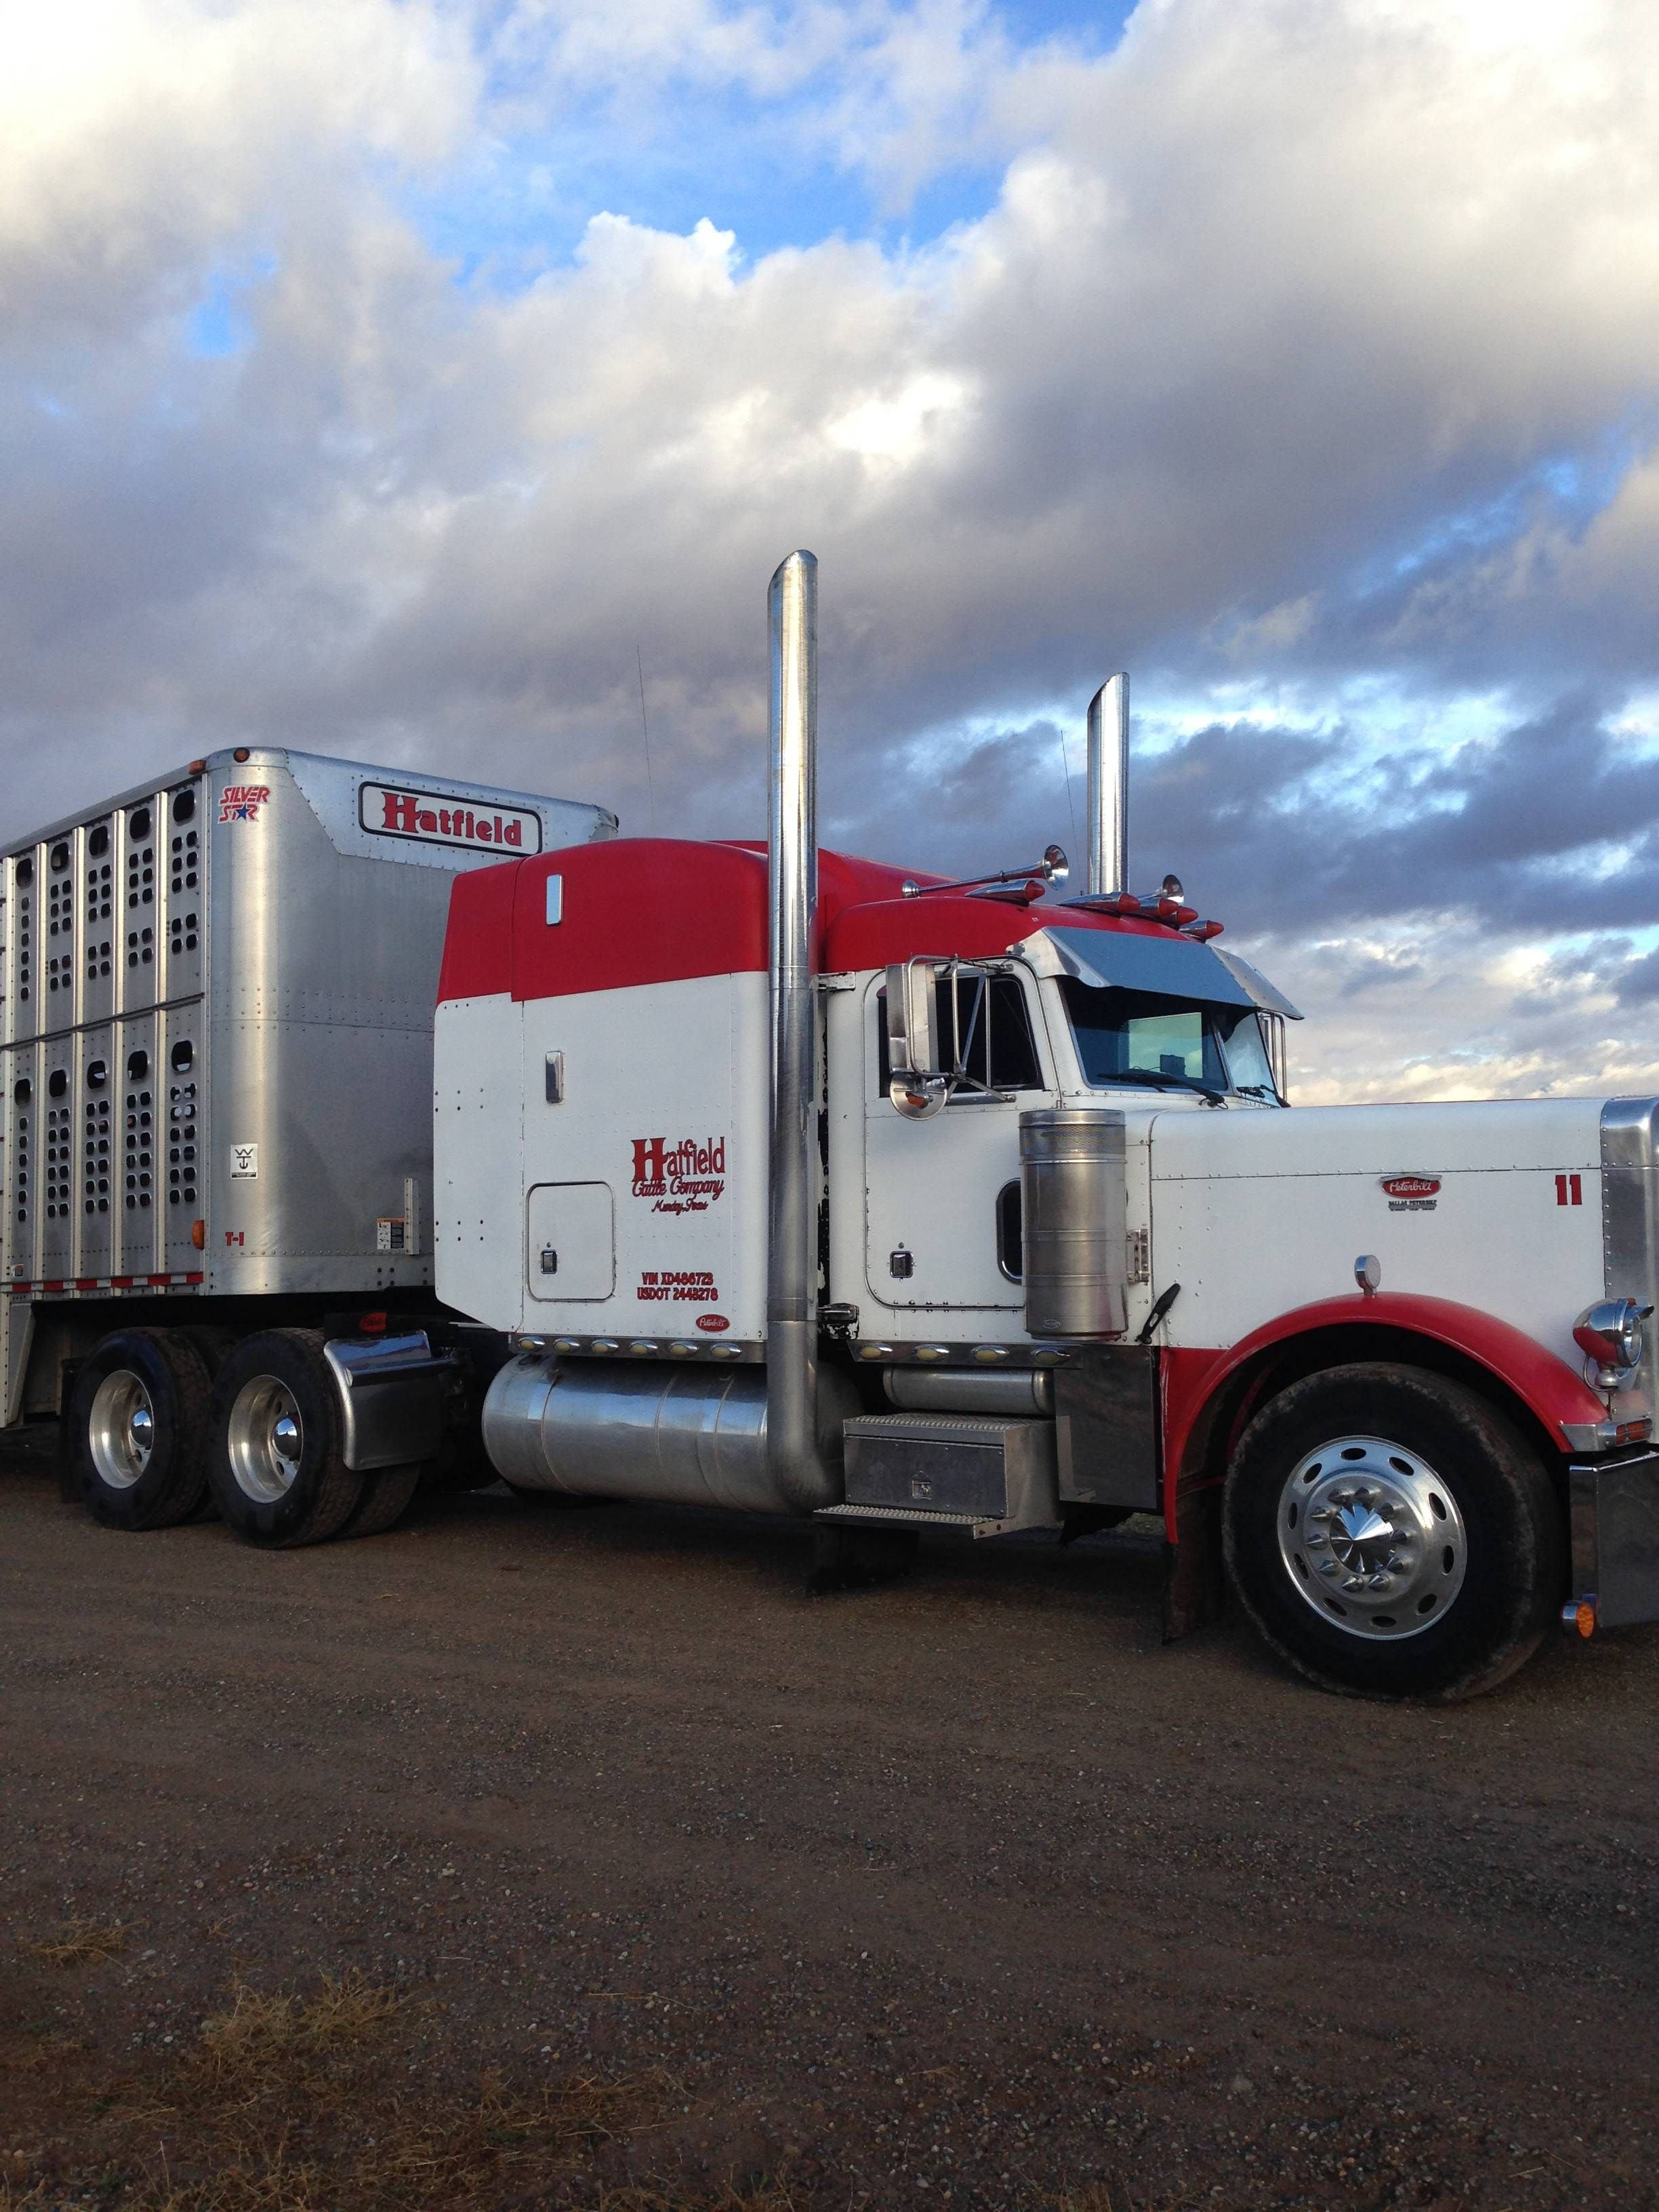 1999 peterbilt 379 for sale for more information click on the image or see ad